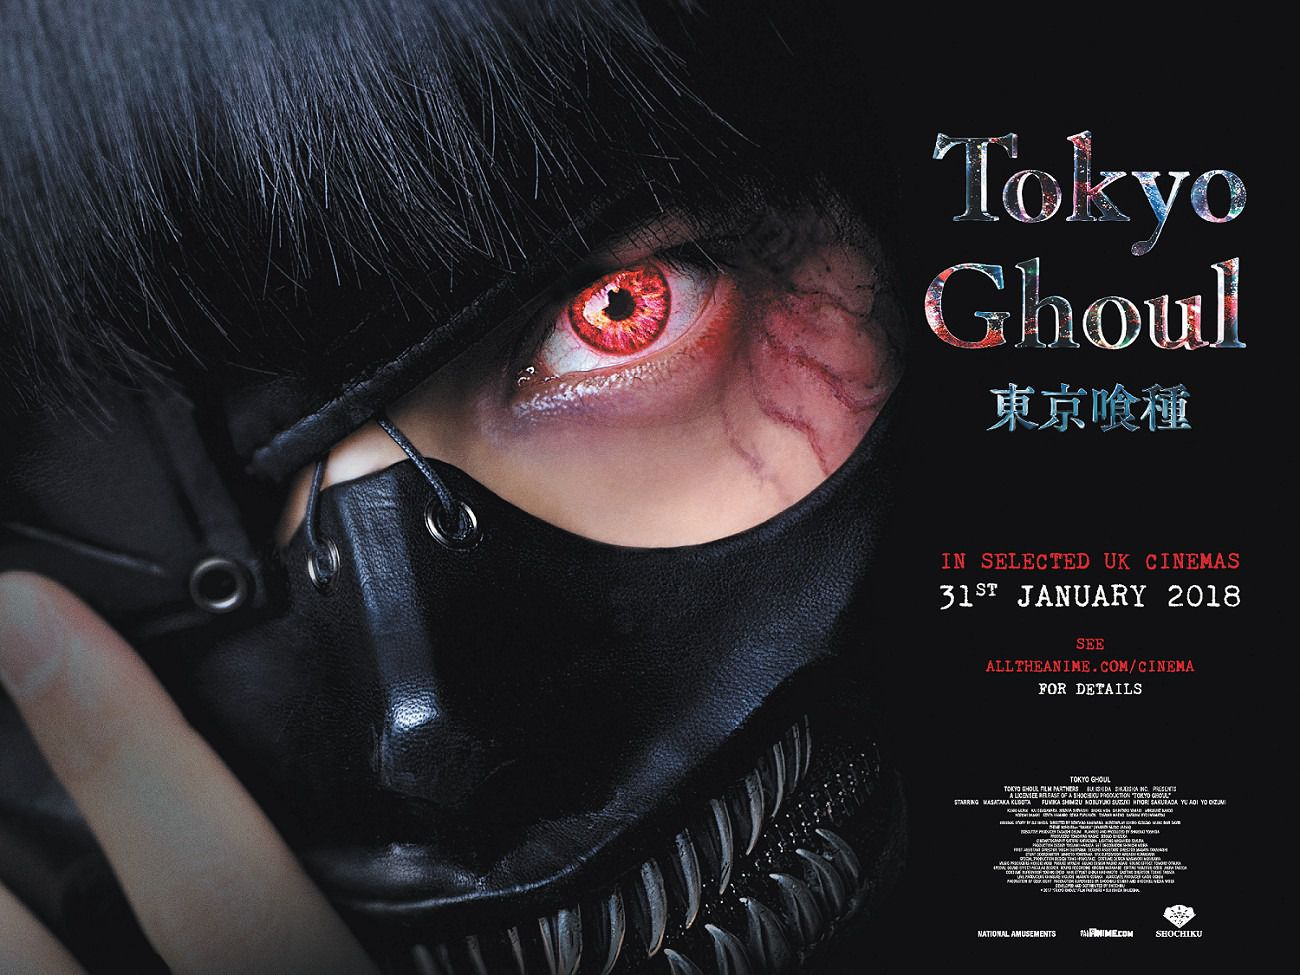 Tokyo Ghoul - Tokyo Guru - live action film poster based anime story with real actor people